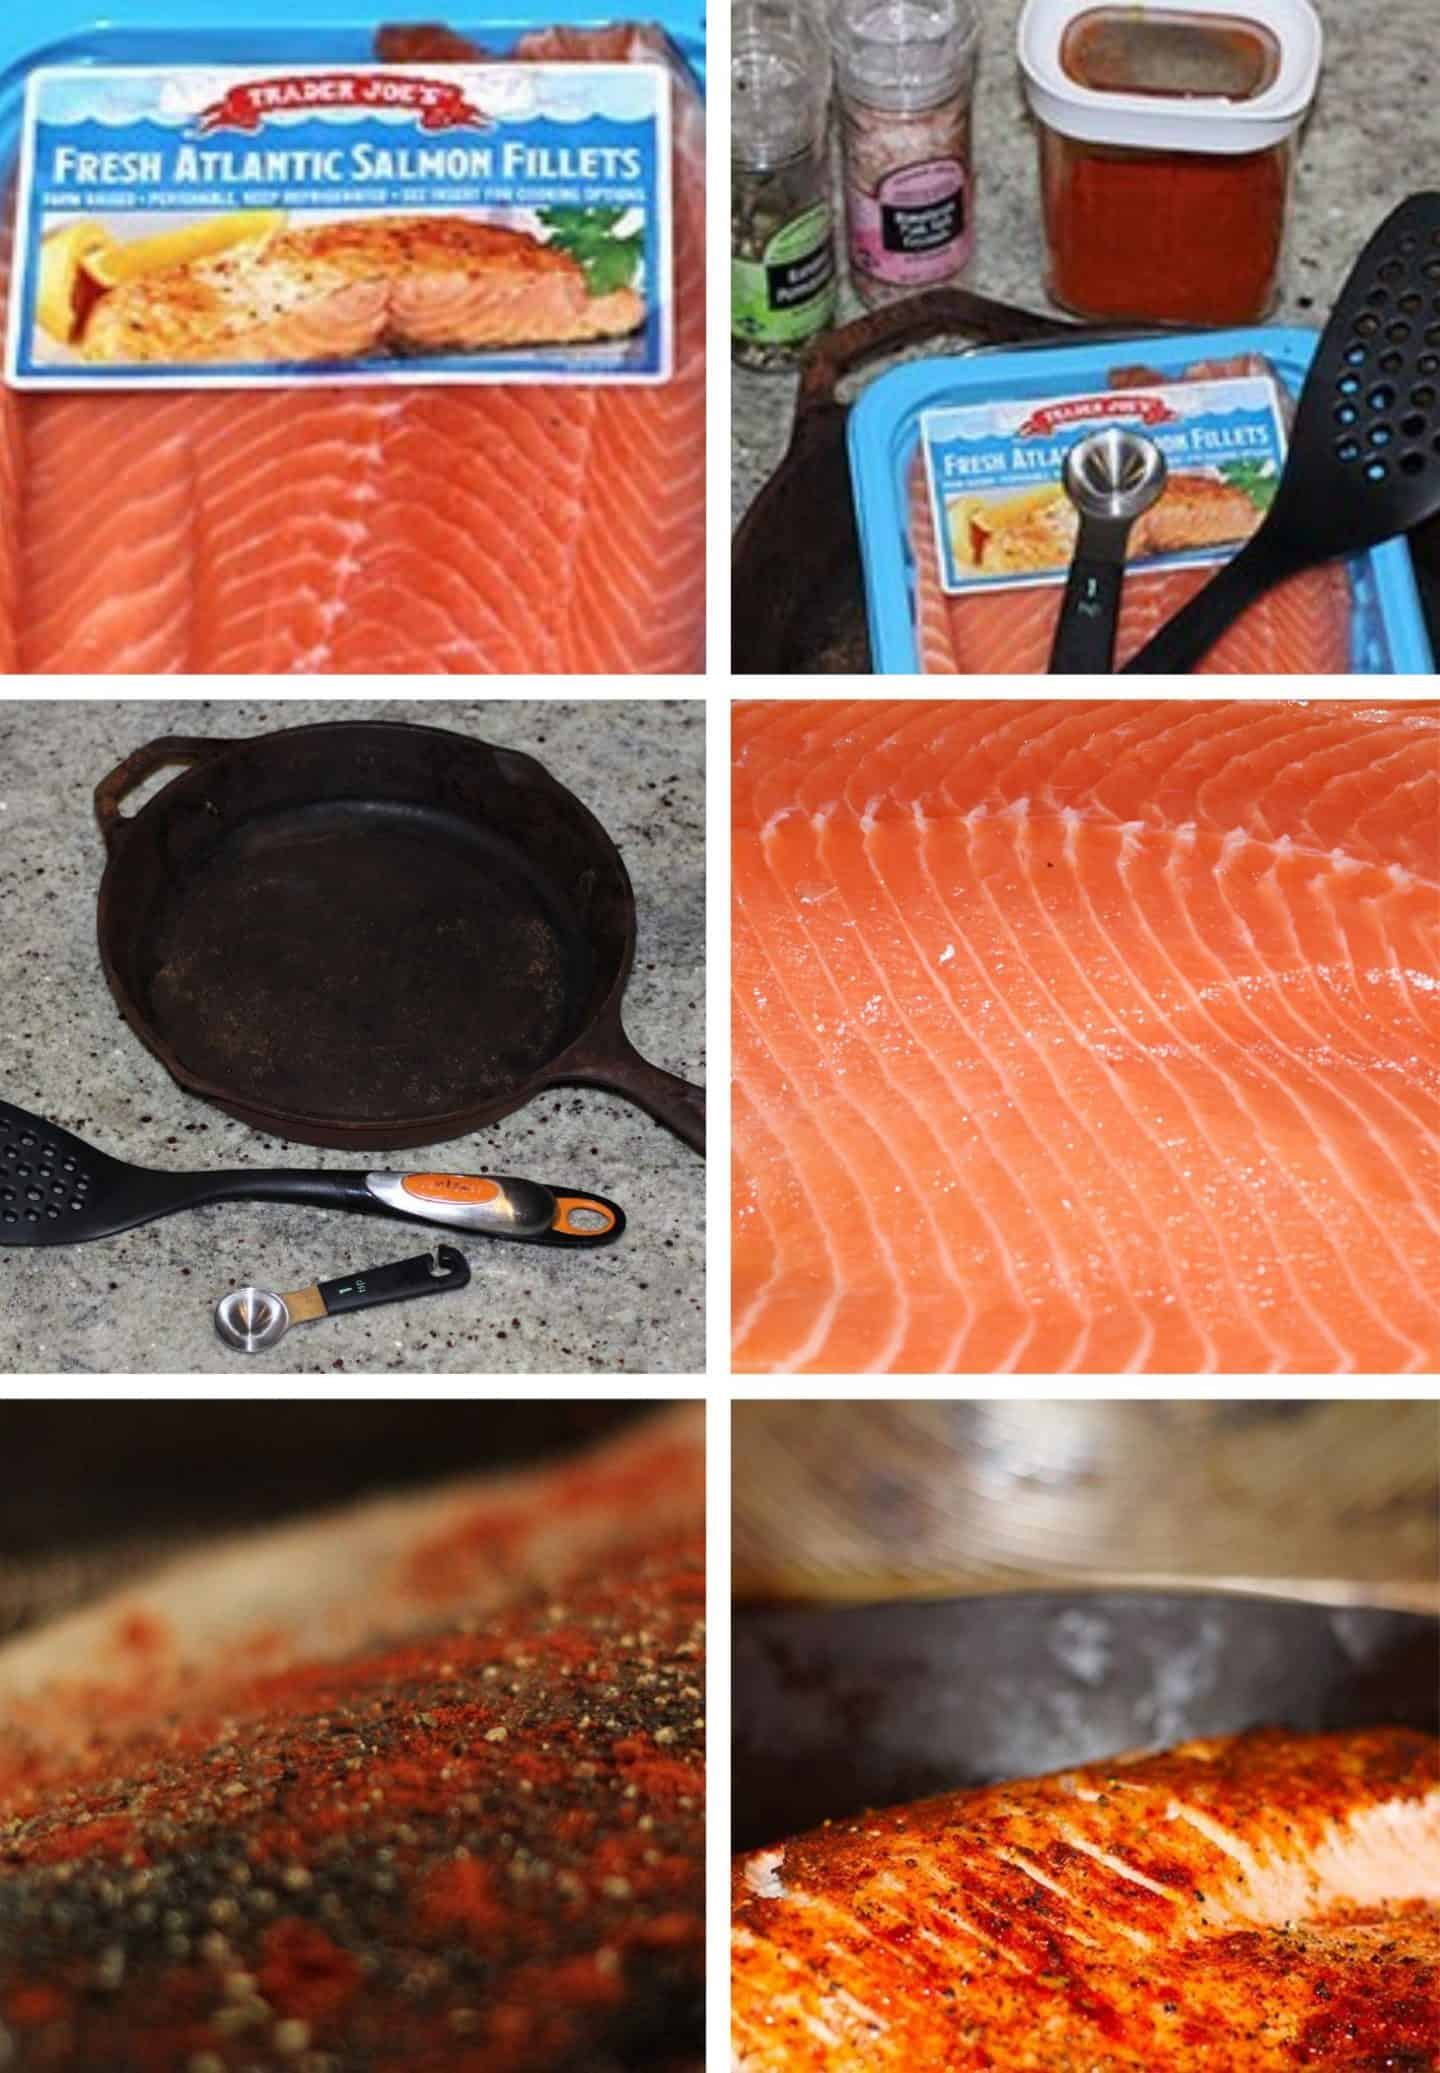 ingredients and step-by-step instructions how to make broiled salmon